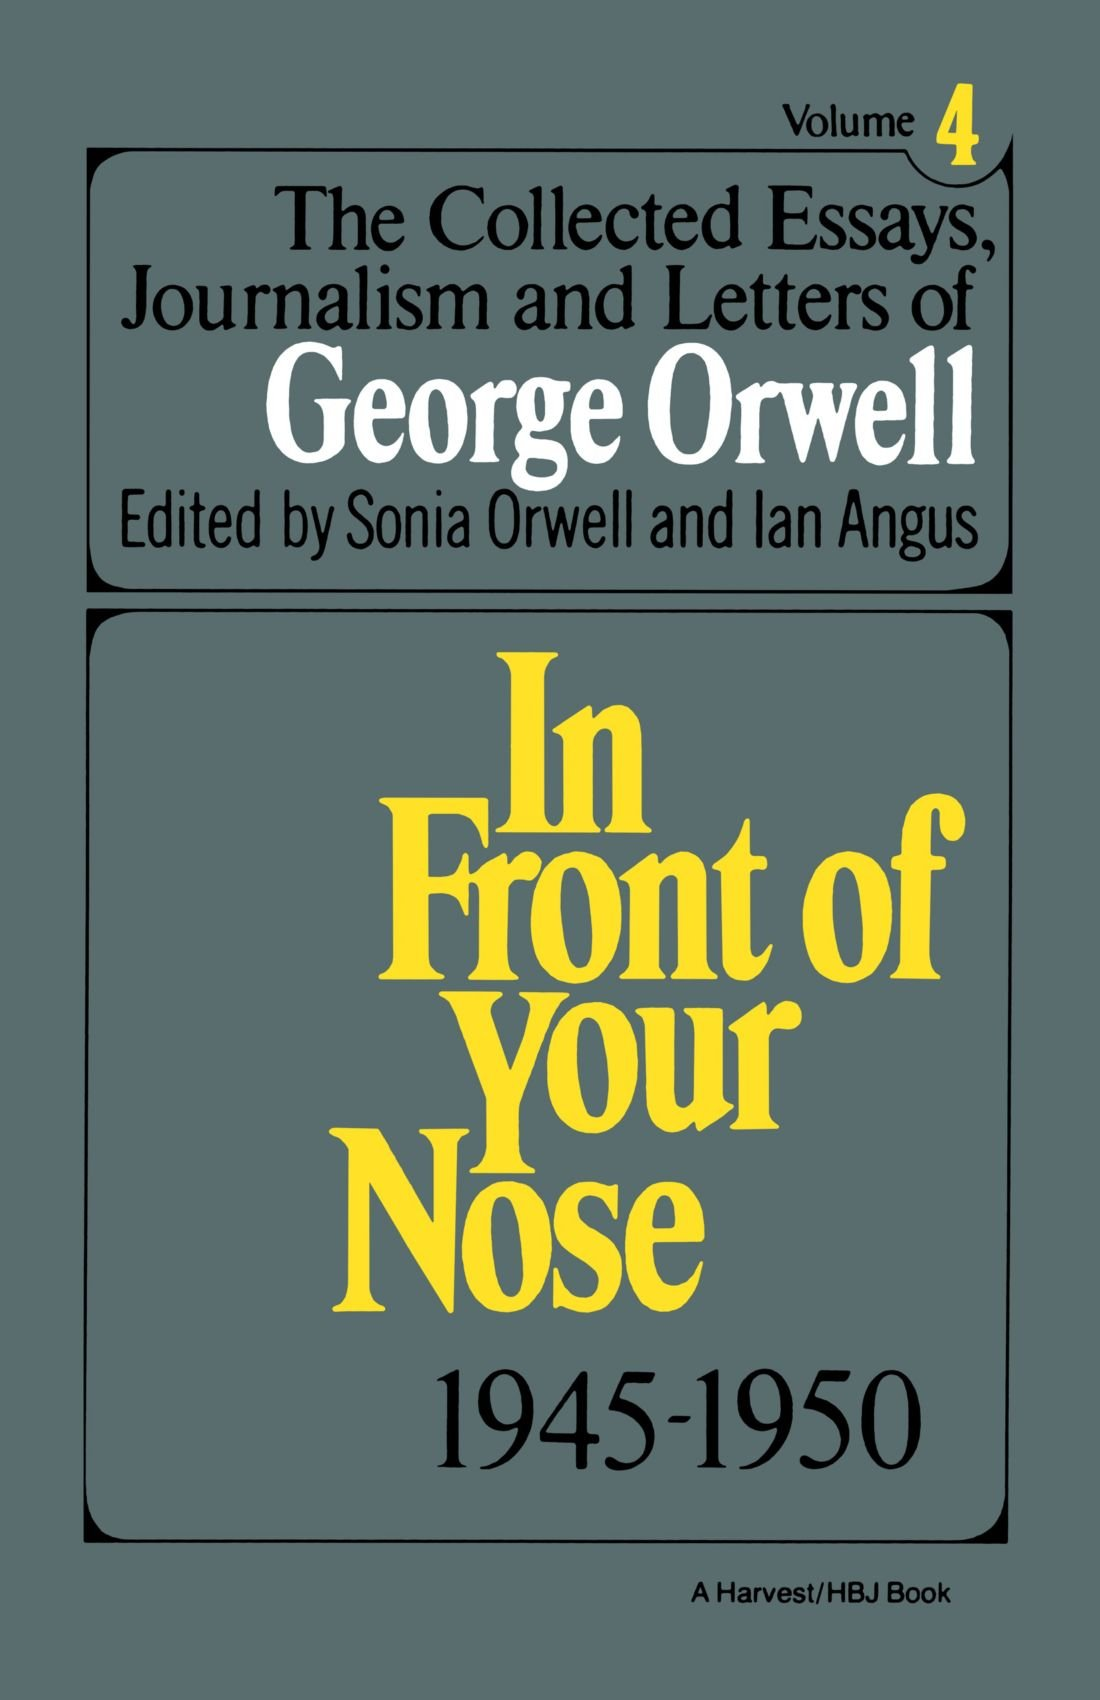 the collected essays journalism and letters of george orwell vol the collected essays journalism and letters of george orwell vol 4 1945 1950 george orwell 9780156186230 literature